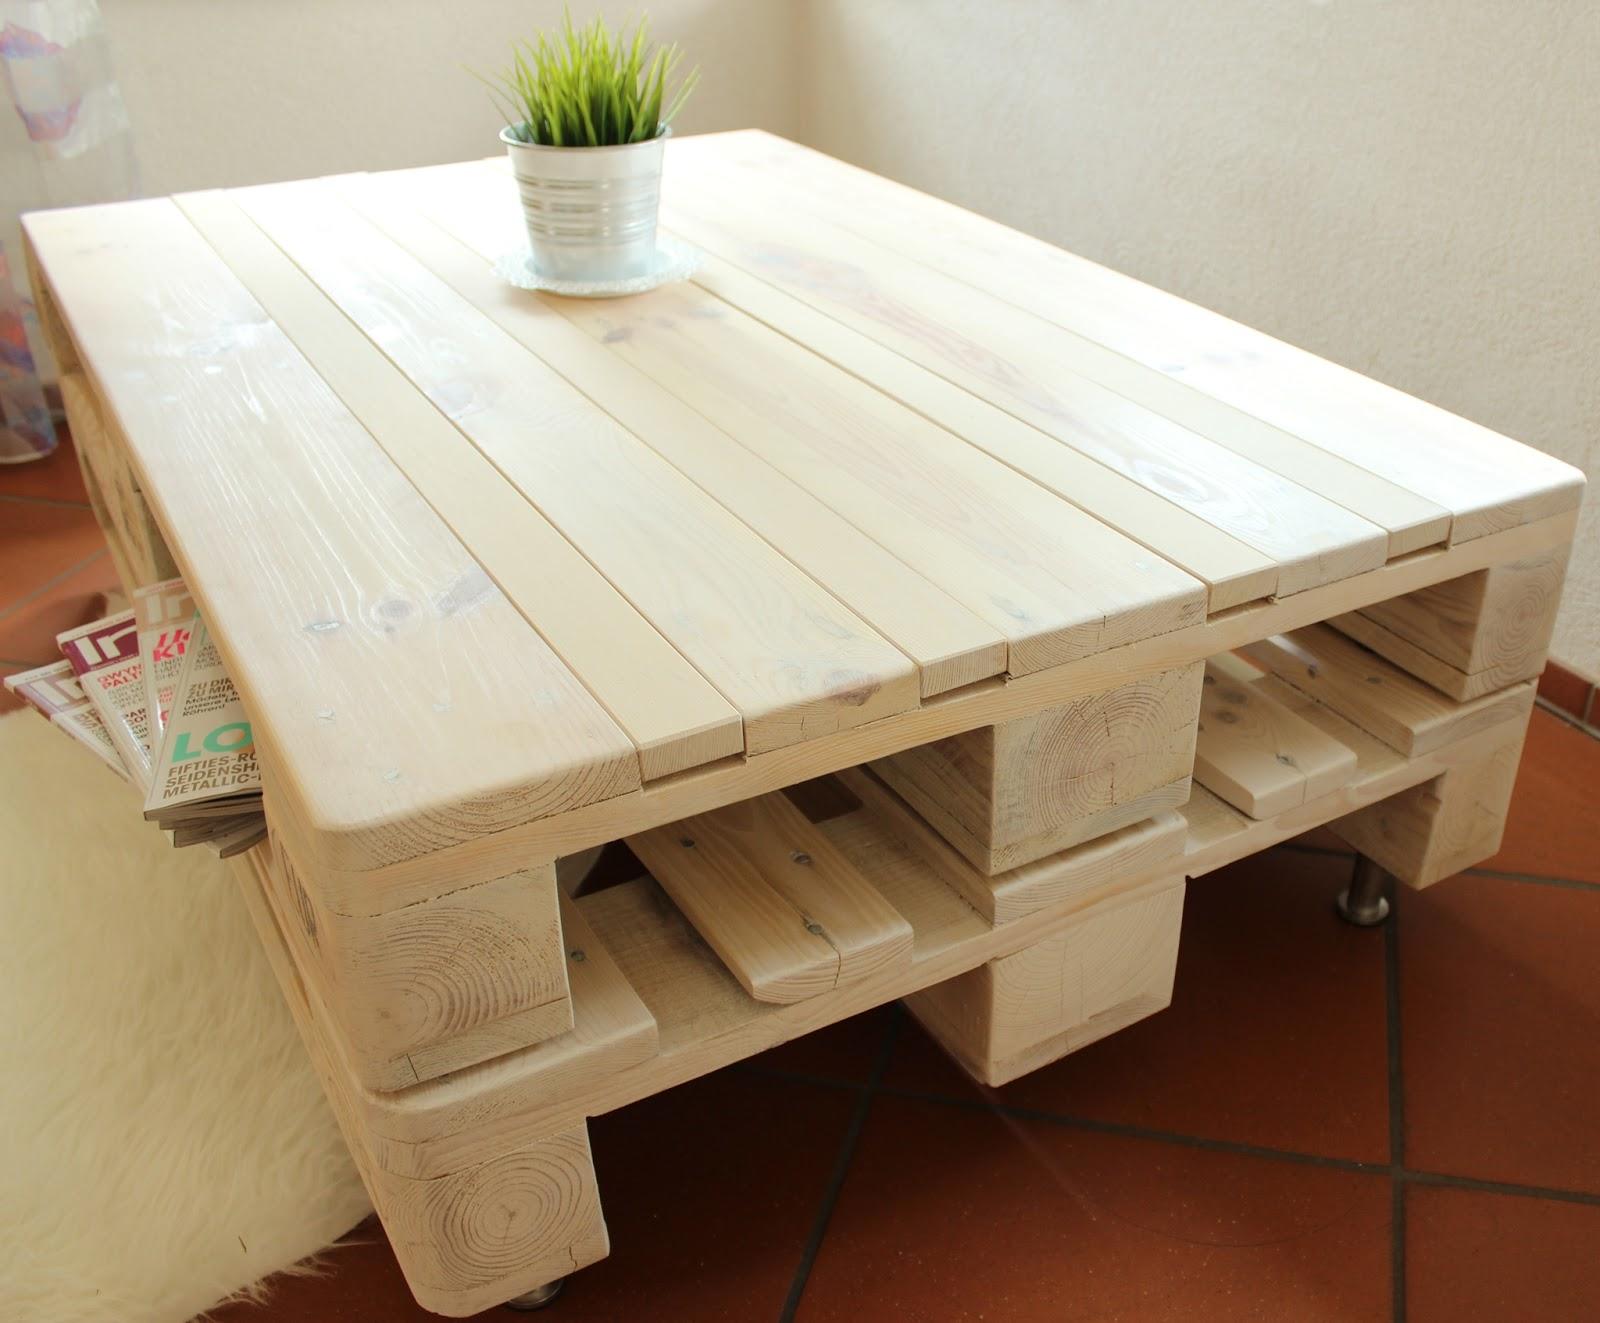 Interior diy palettentisch the blonde lion fashion - Wohnzimmertisch aus weinkisten ...